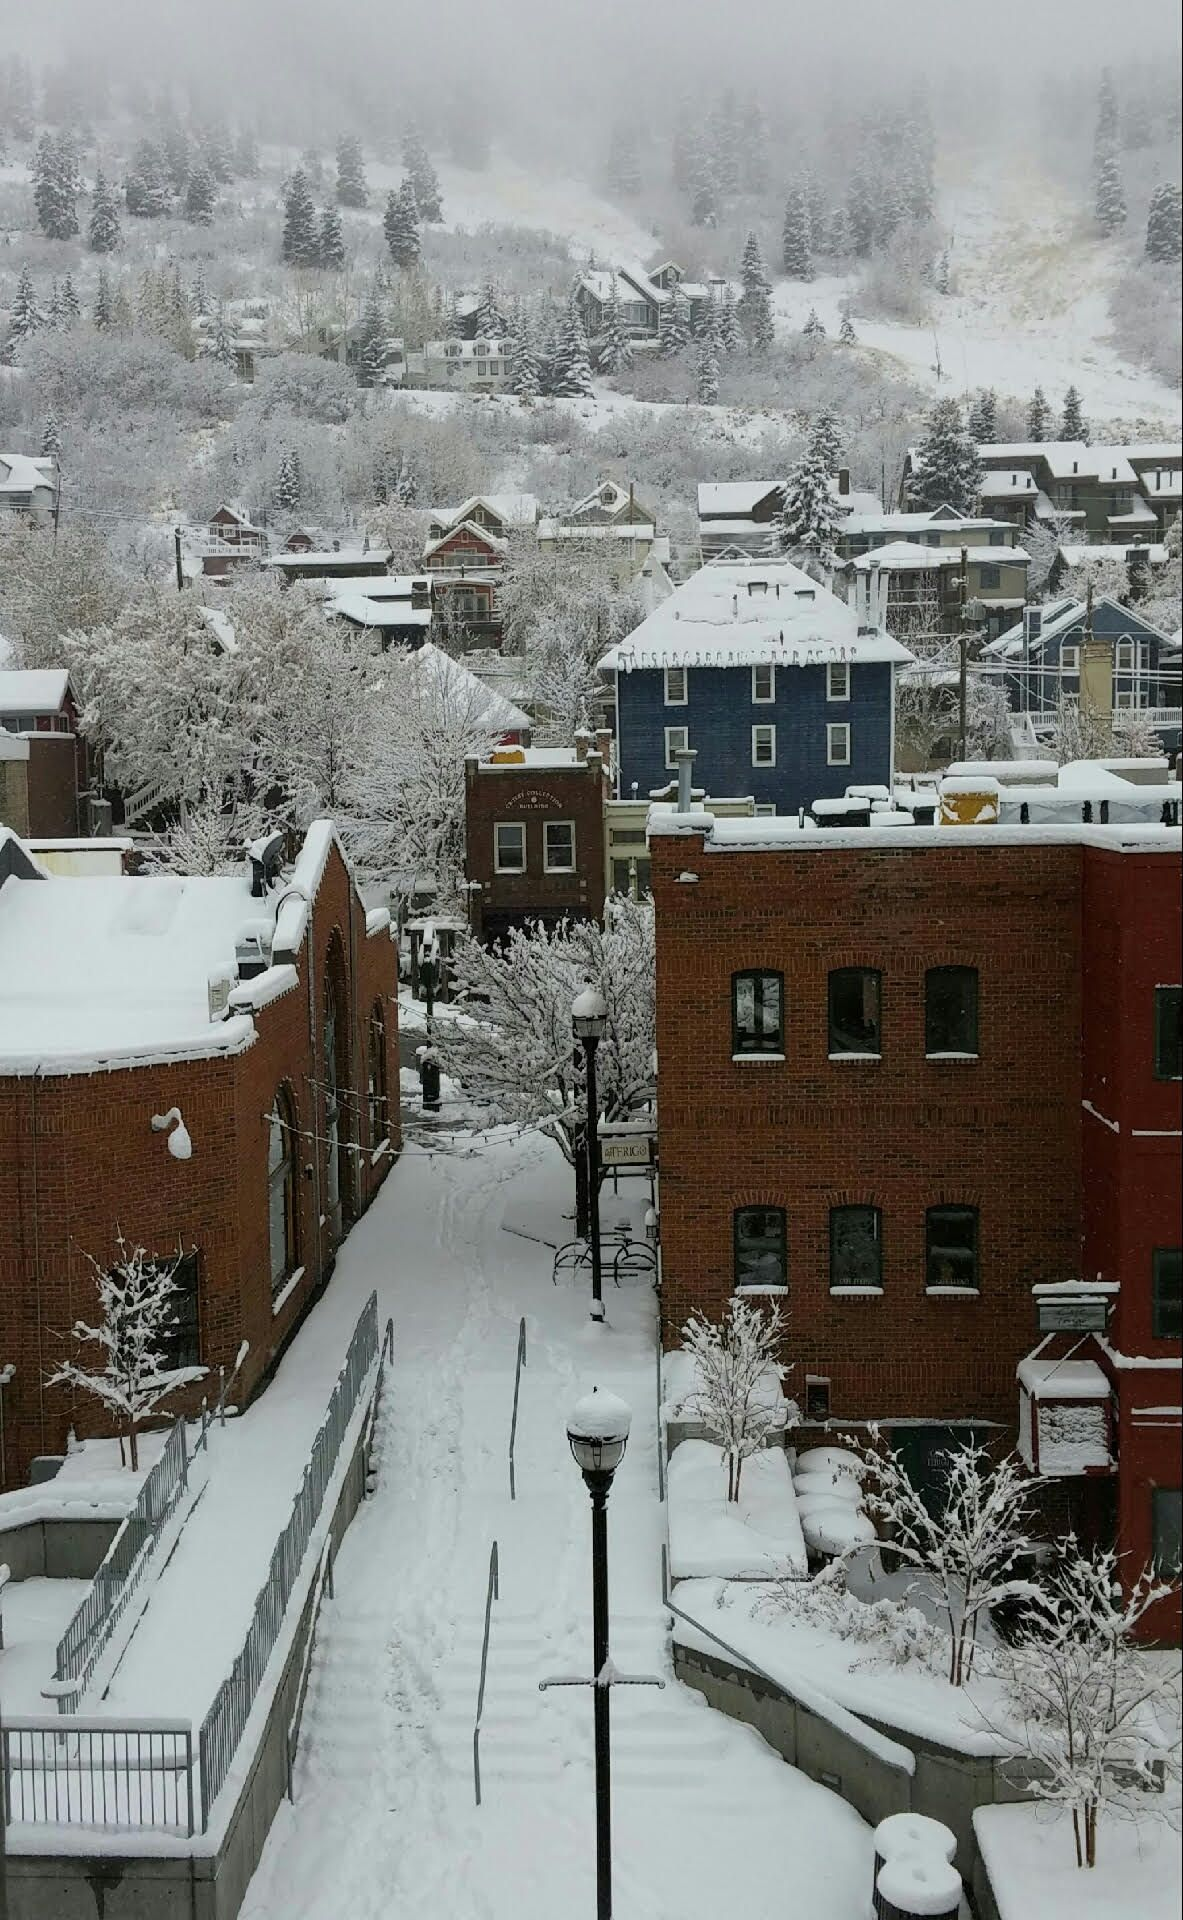 First Snowy Day in Park City